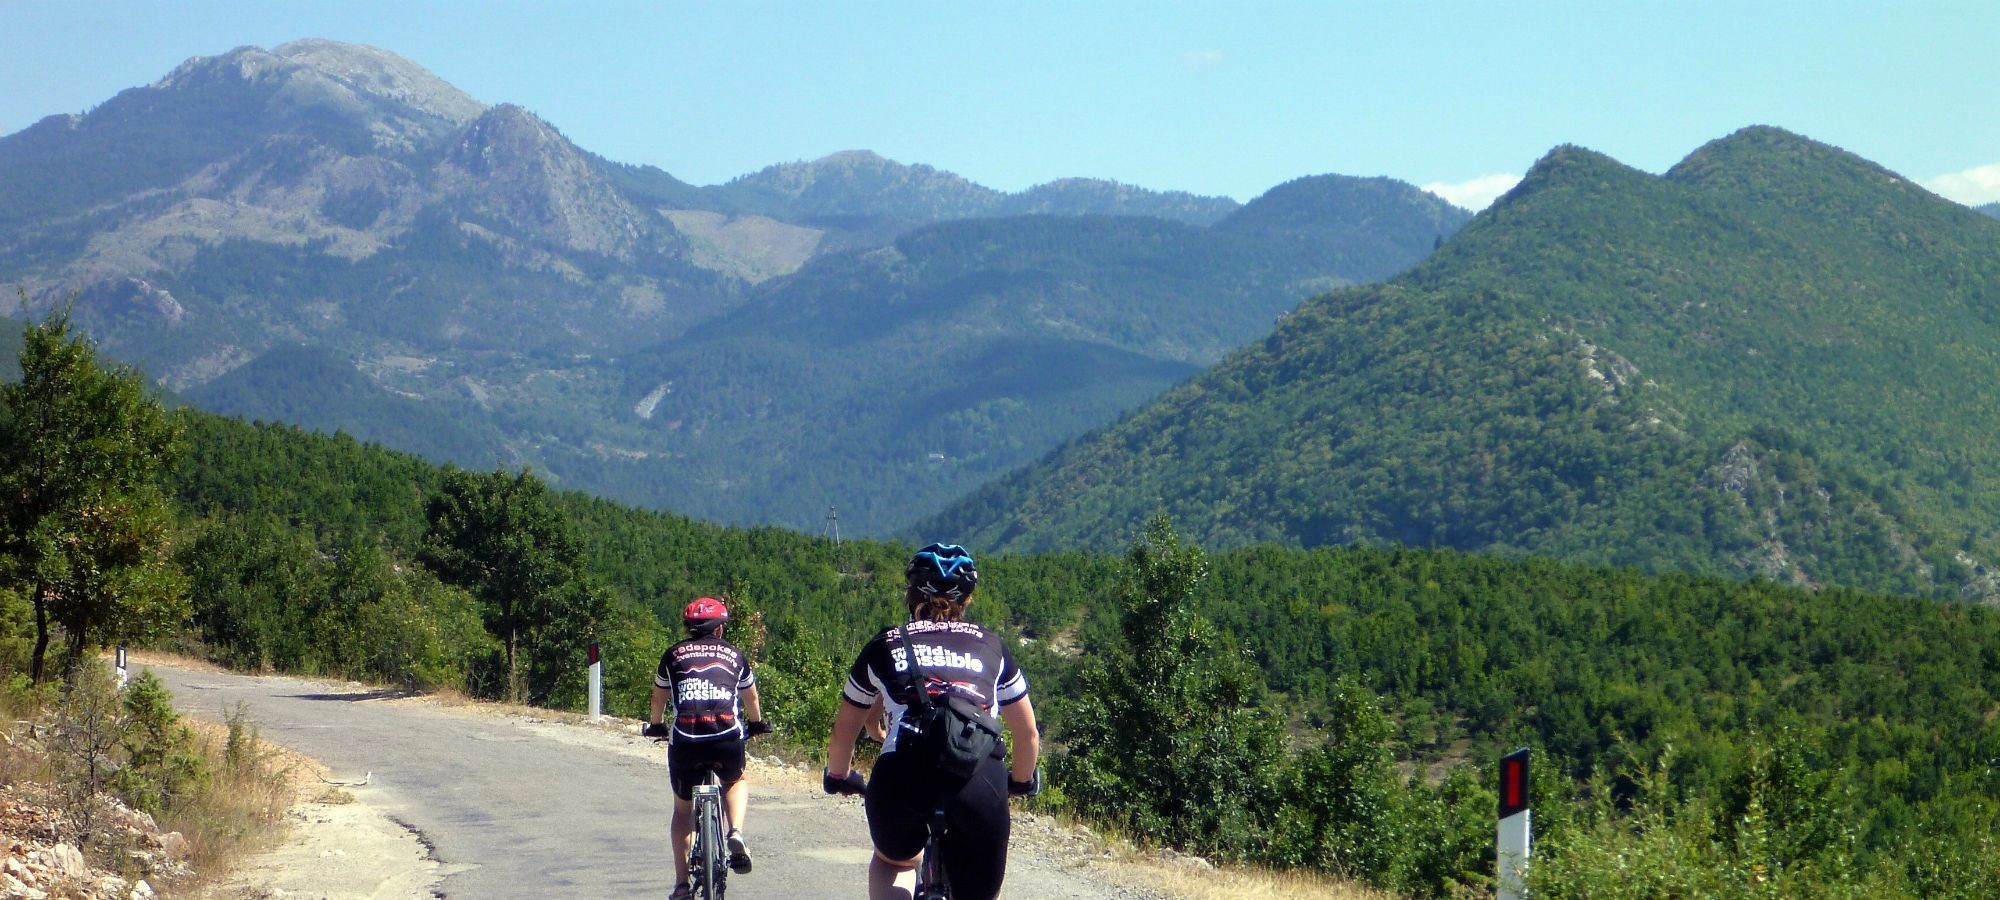 Photos from our Albania - North to South Cycling Holiday